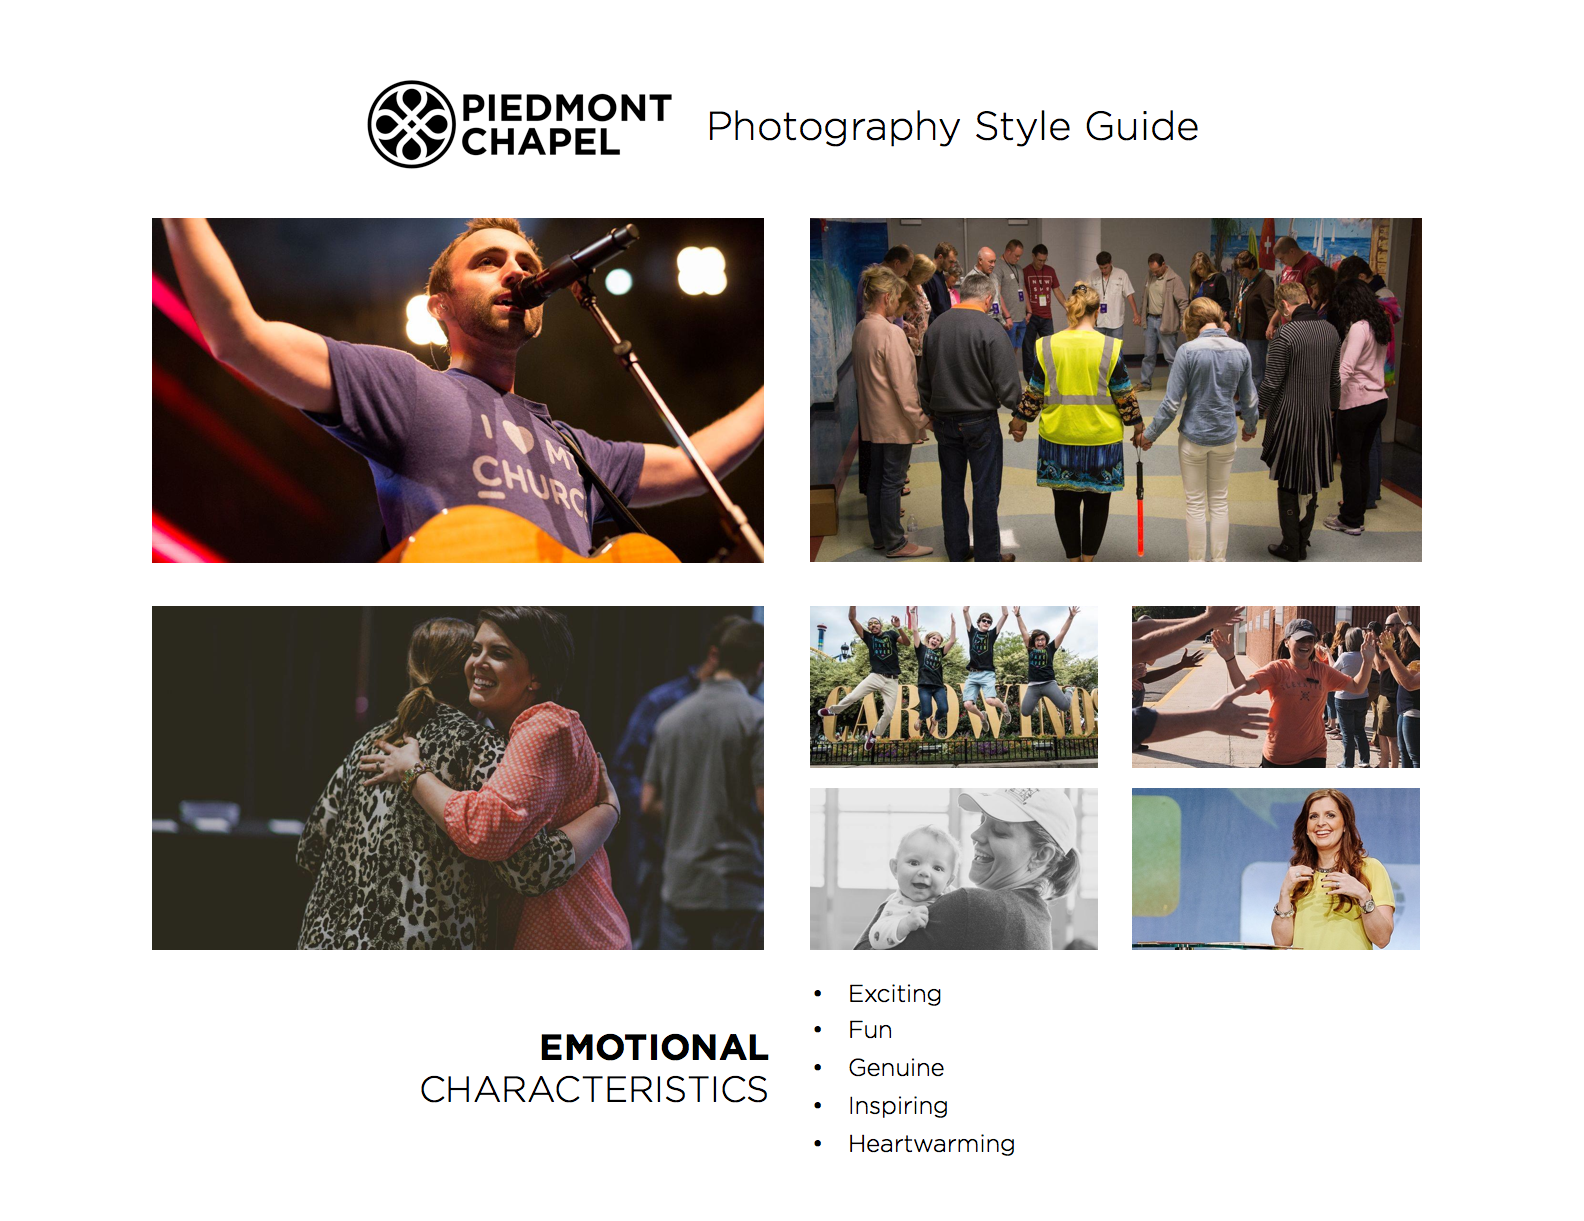 Piedmont Chapel Photography Style Guide - Page 3